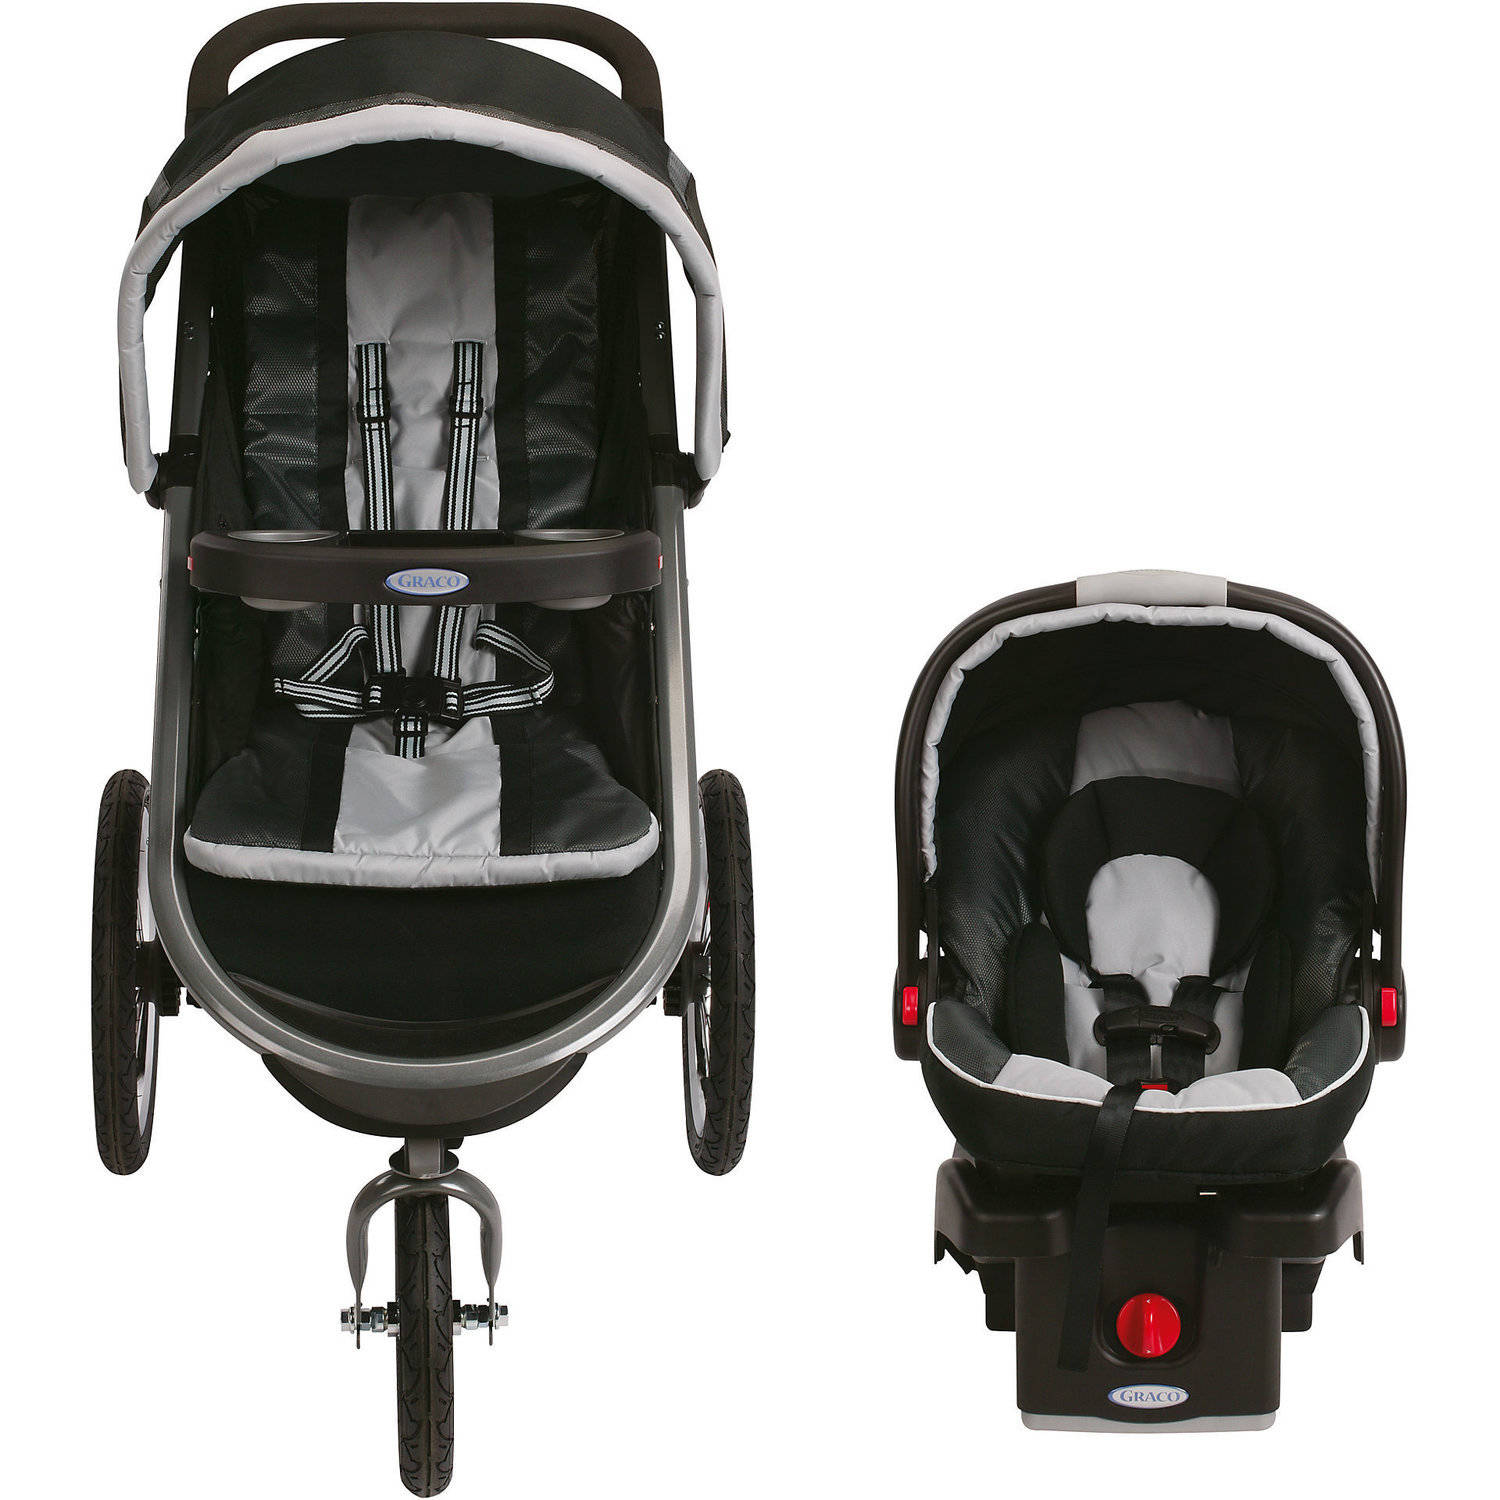 Fast Action Three Wheel Fold Jogger Click Connect Stroller Gotham Finish Black